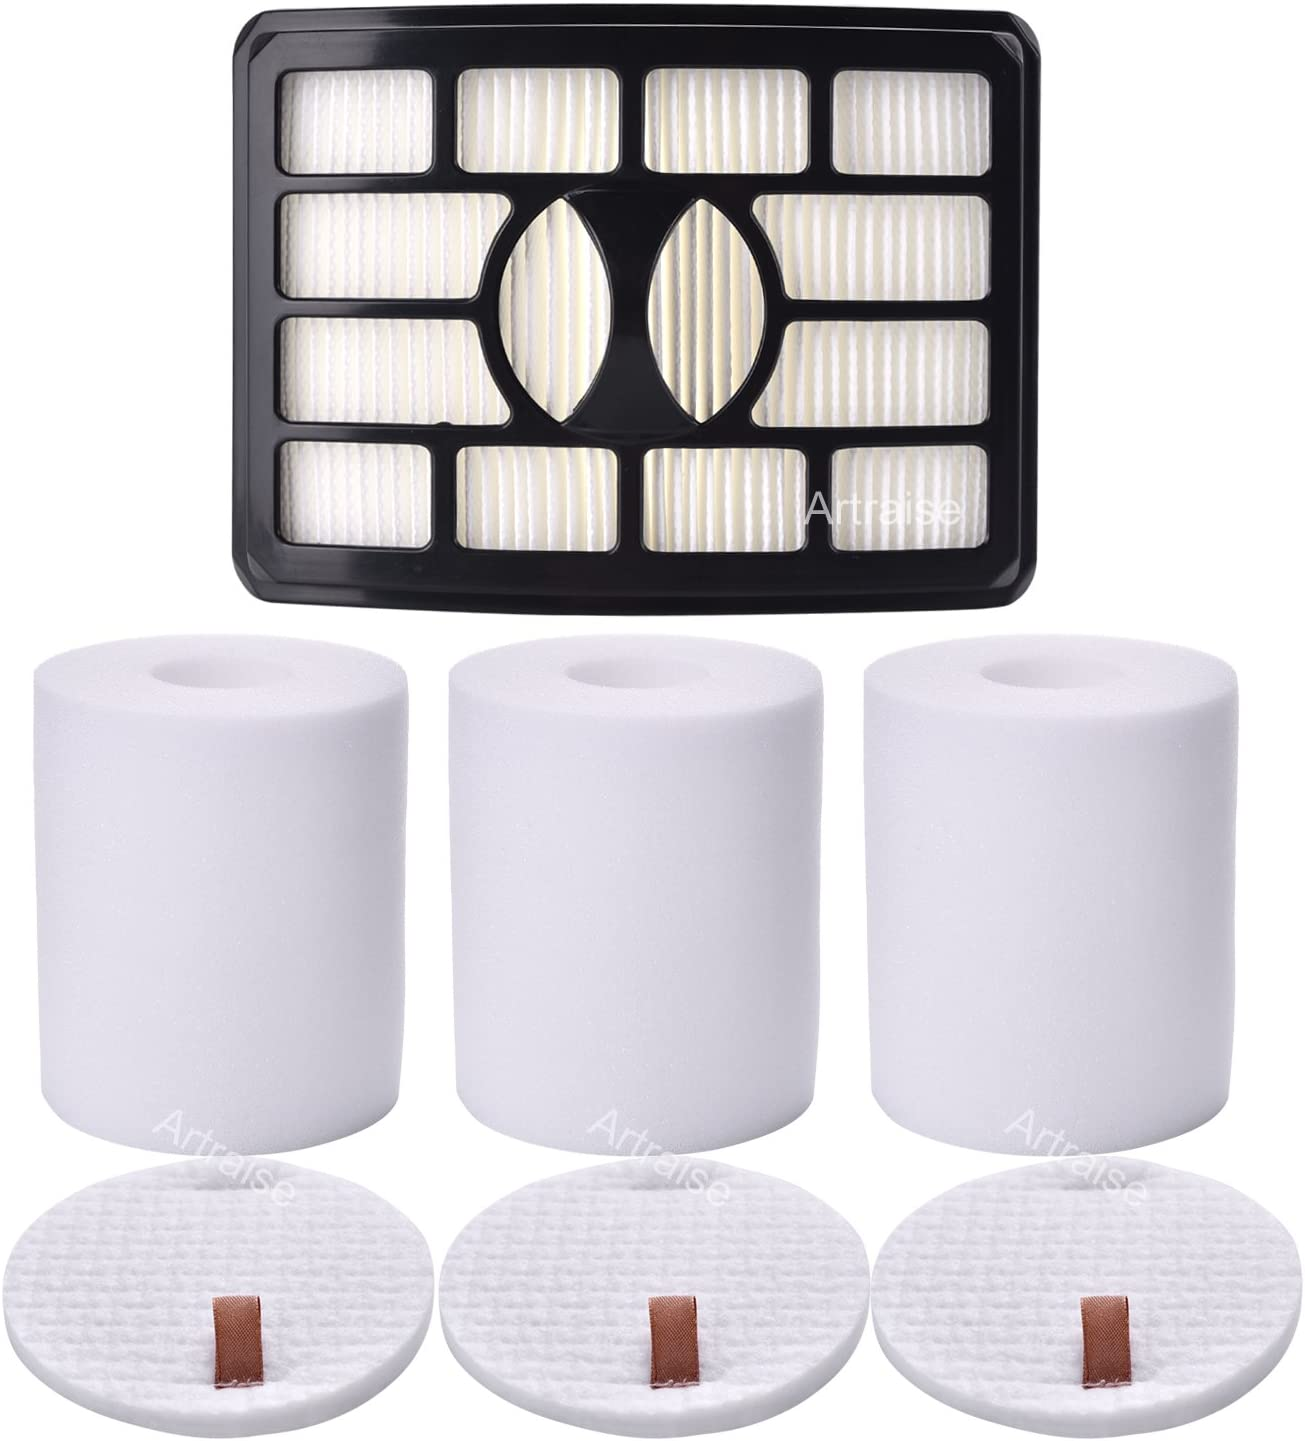 3 Pack Filters for Shark Rotator Pro Lift-away NV500, NV501, NV502, NV503, NV505, NV510, NV520, NV552, UV560, Xff500 Xhf500 (Not Fits NV650,NV680,NV750 Series) By Artraise